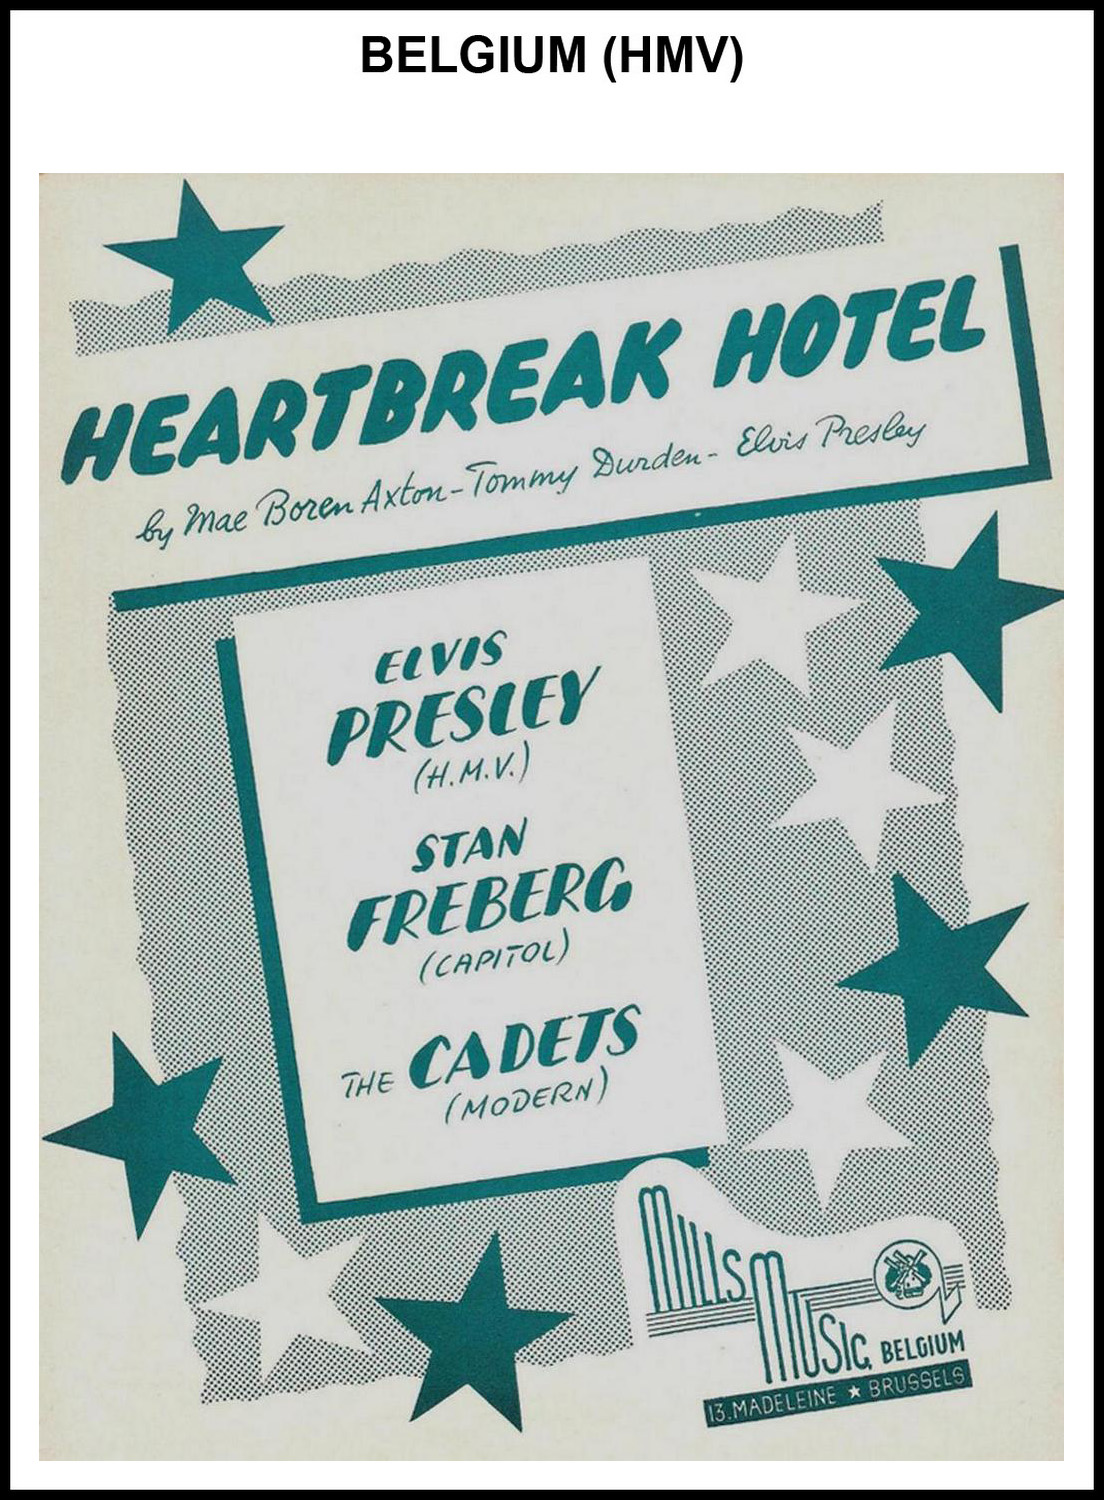 1956 - Heartbreak Hotel (Belgium, HMV) (CHRIS GILES COLLECTION)